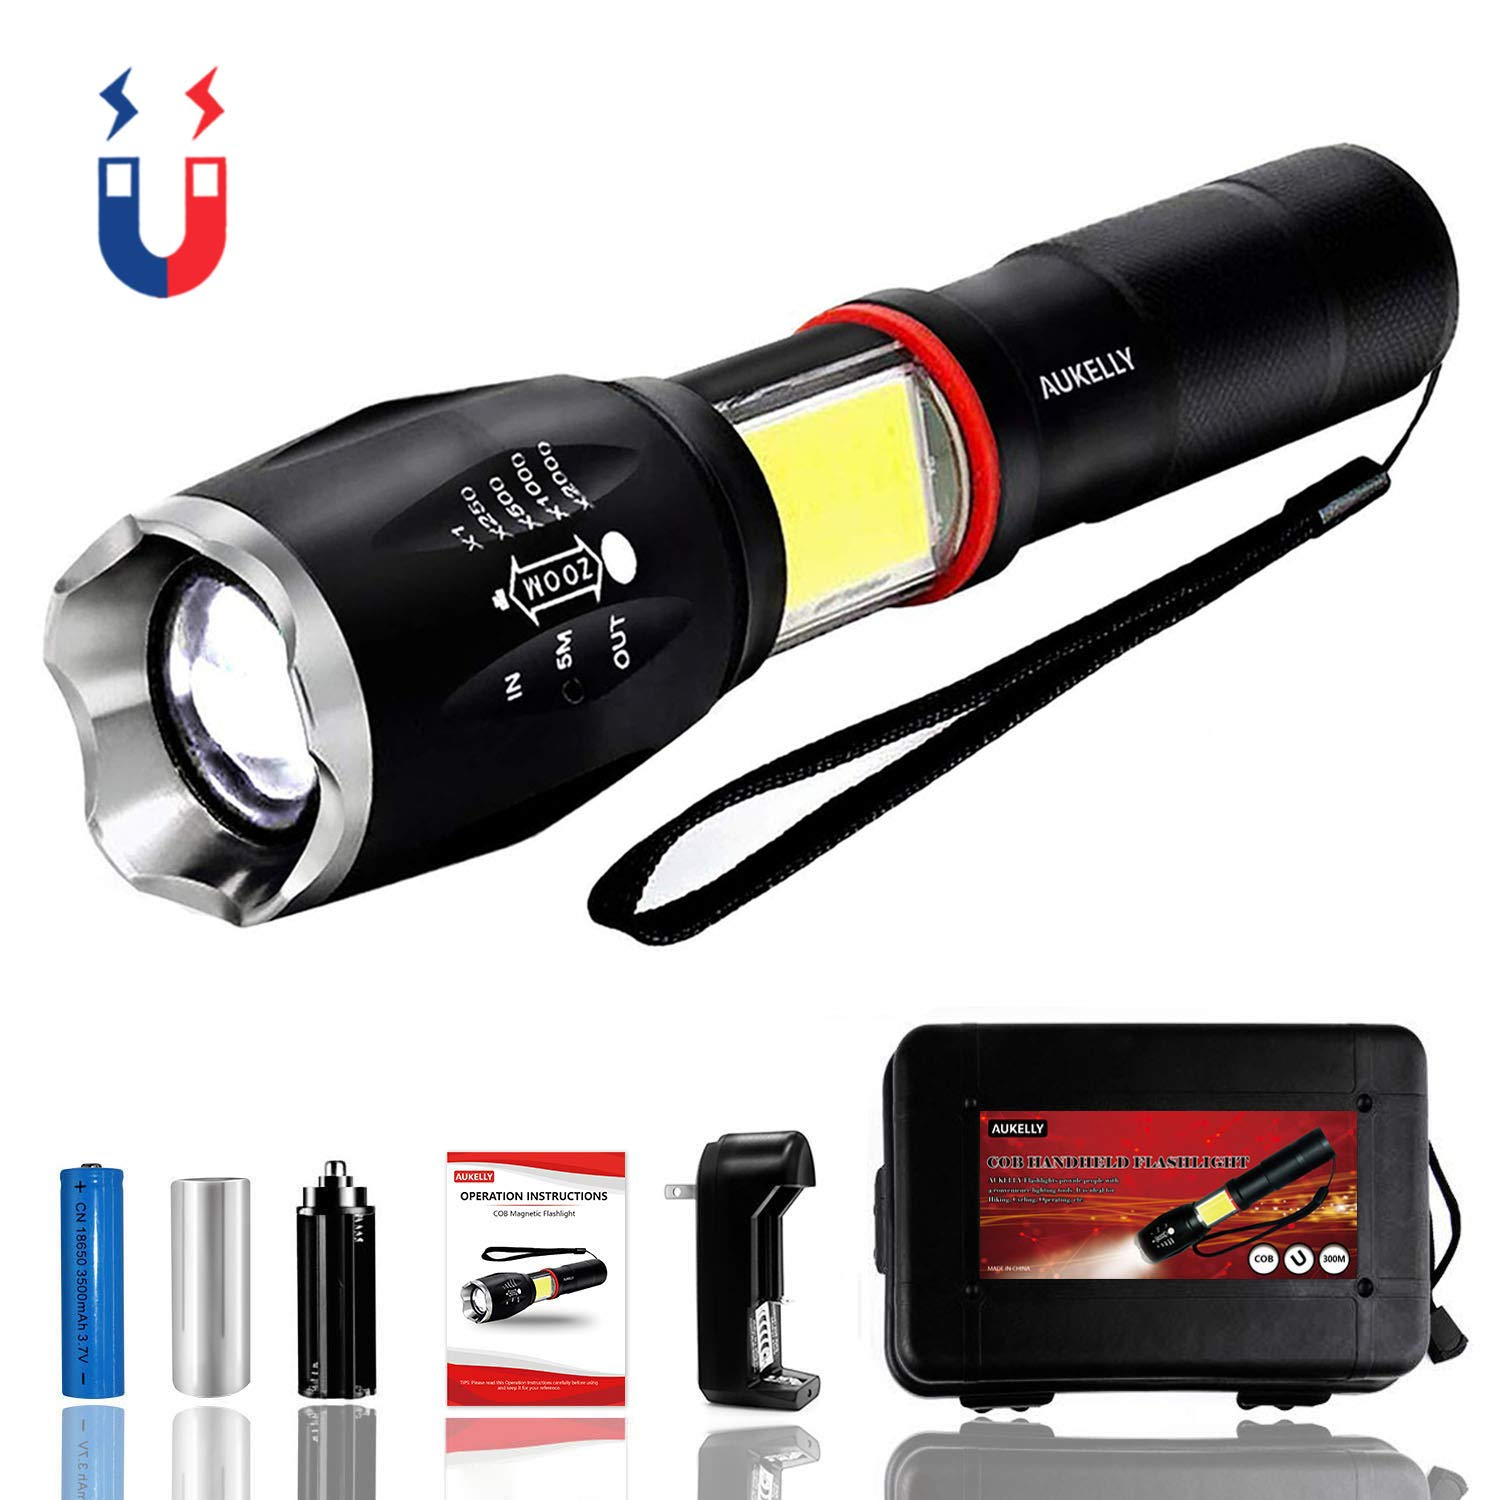 Aukelly Flashlight Rechargeable LED Flashlights High Lumens,Tactical COB Flashlight,Zoomable,6 Modes,Handheld USB Flashlight Altra Bright Handheld Flashlight For Camping,Emergency,with 18650 Battery